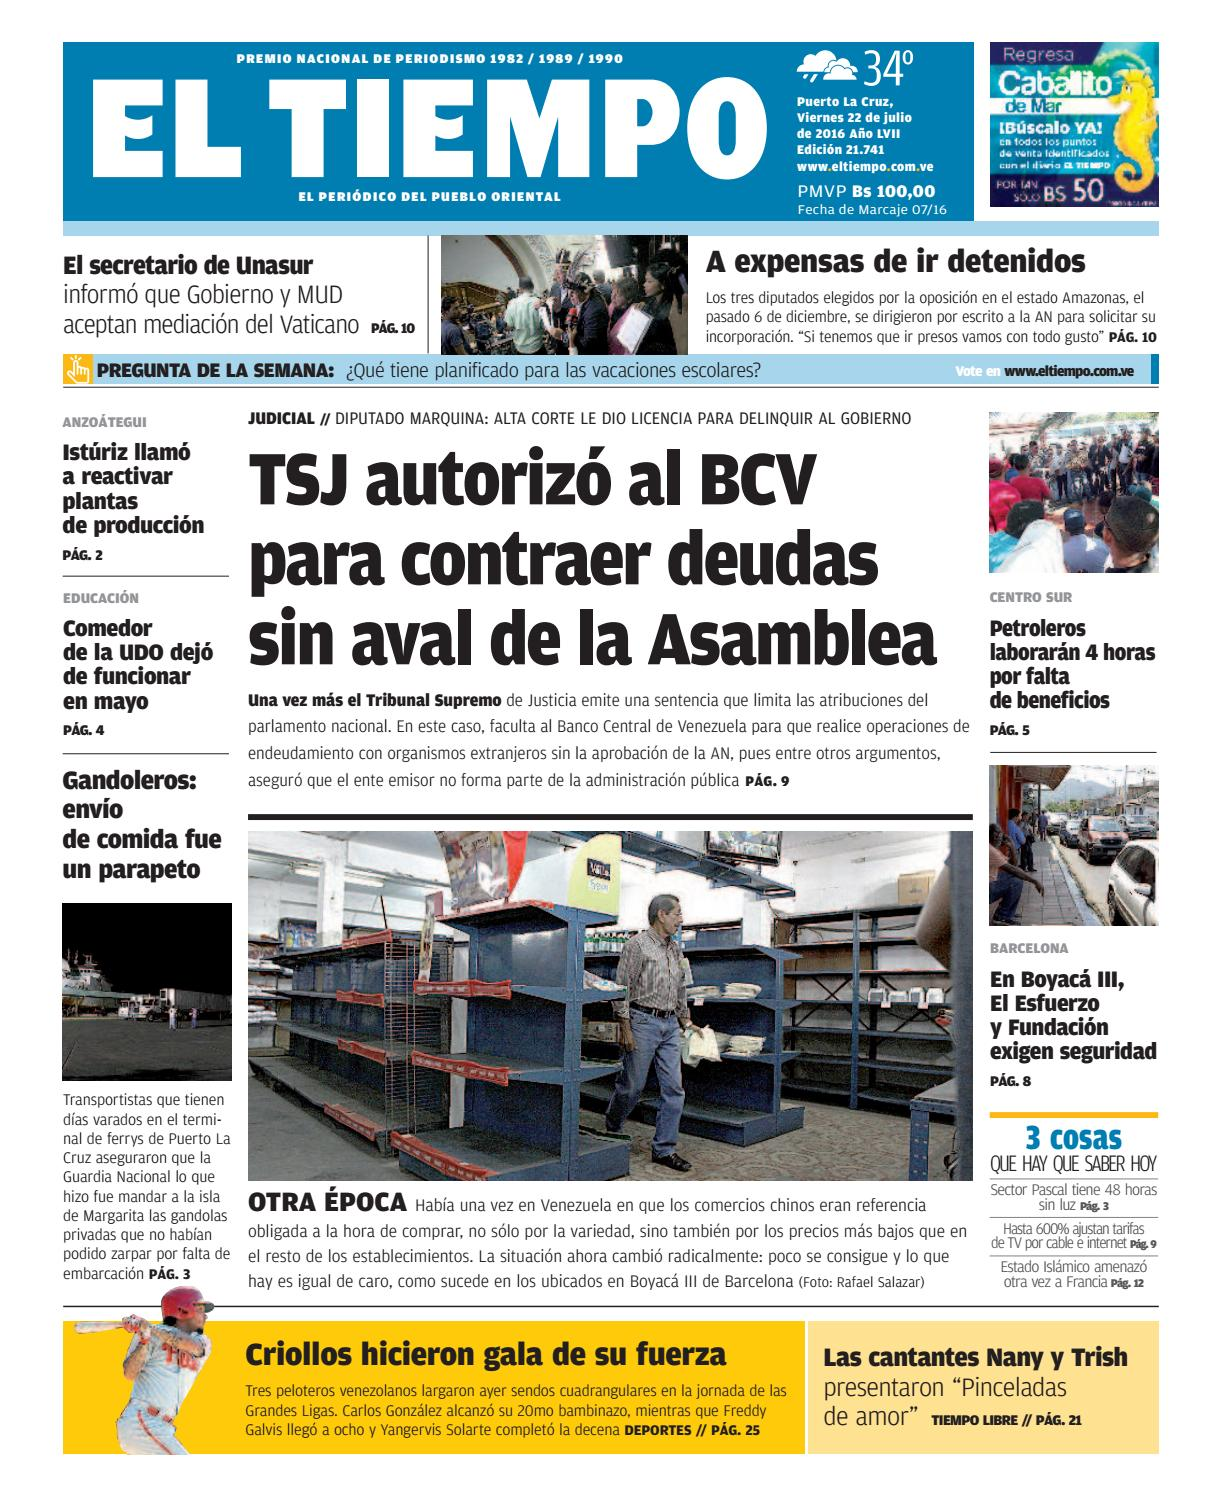 d430ccea0f 0543199001469203664 by Carlos Reyes - issuu